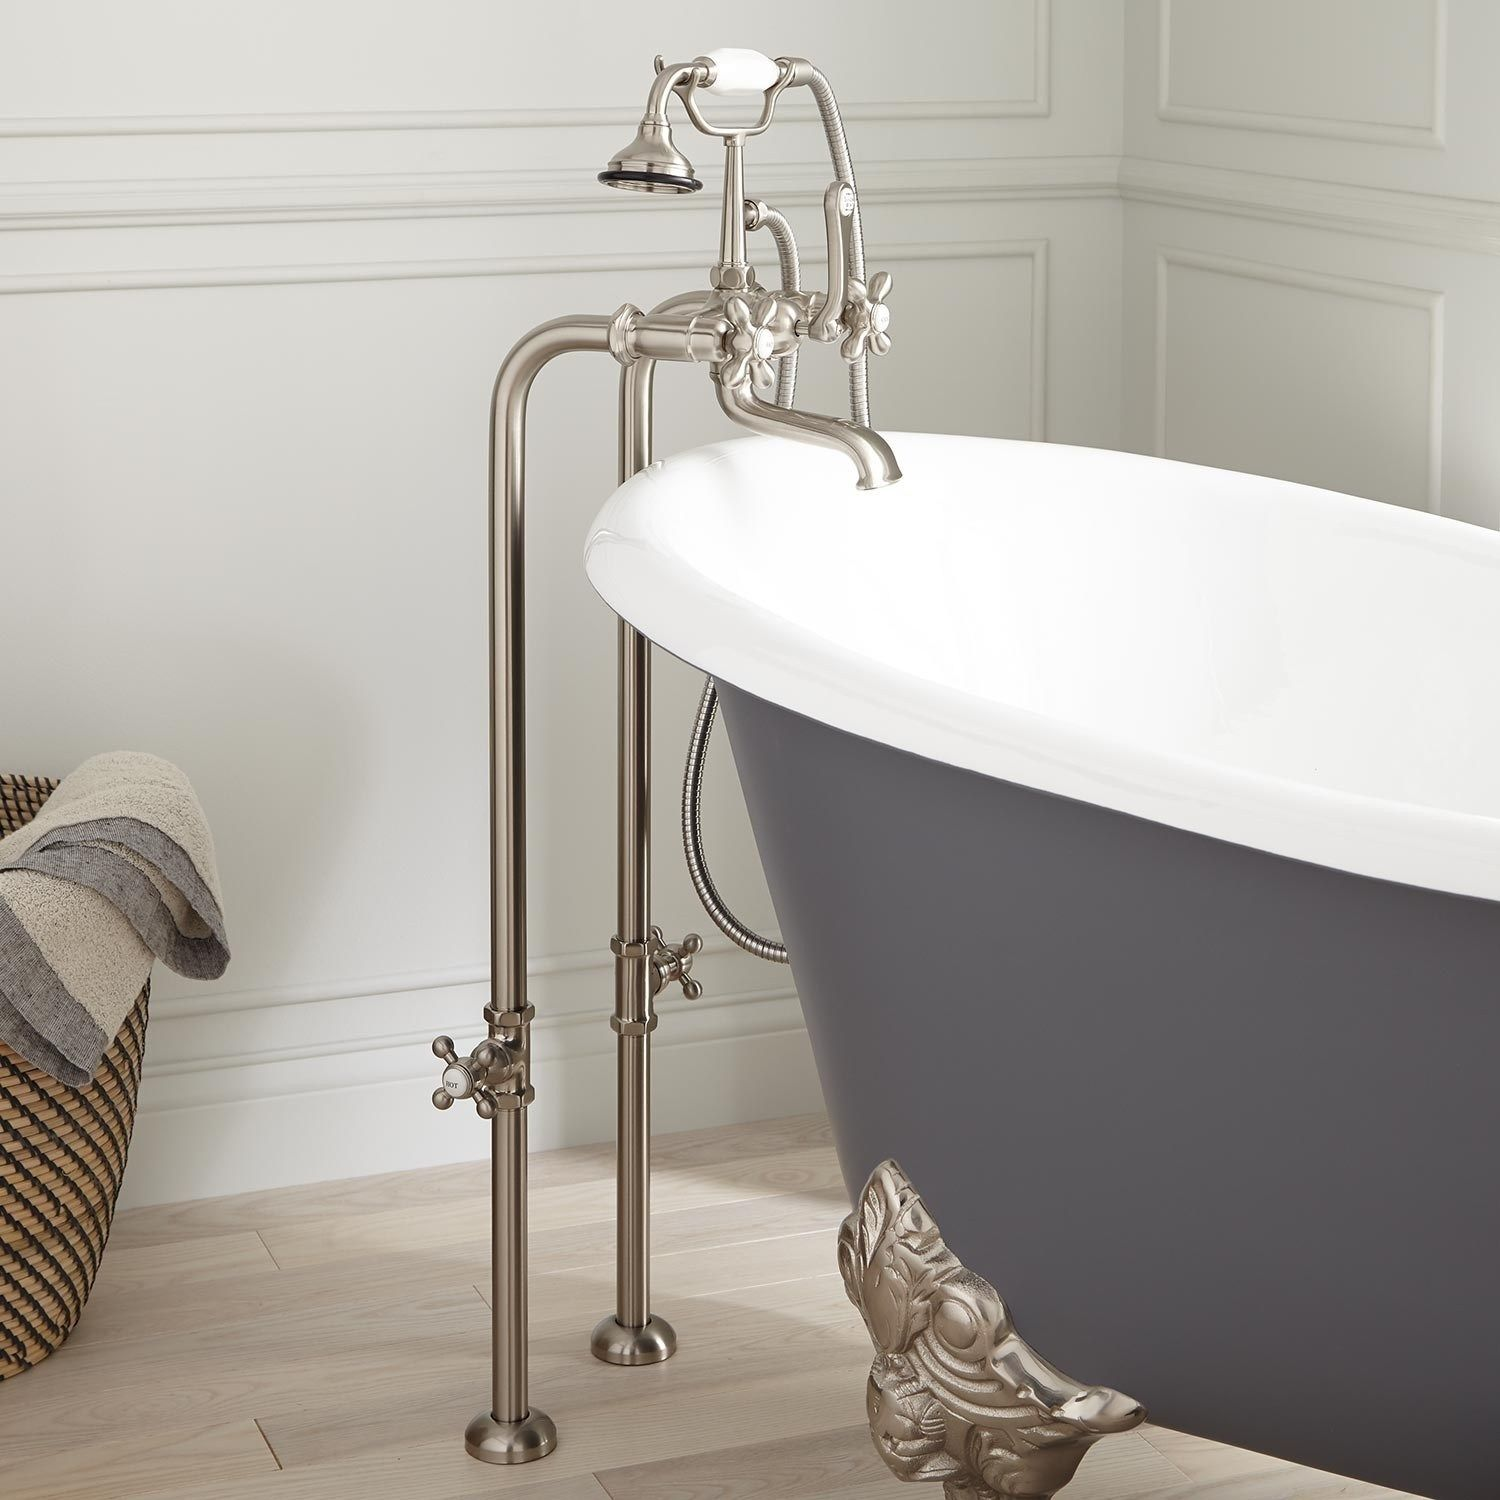 Best Of Freestanding Tub with Deck Mount Faucet